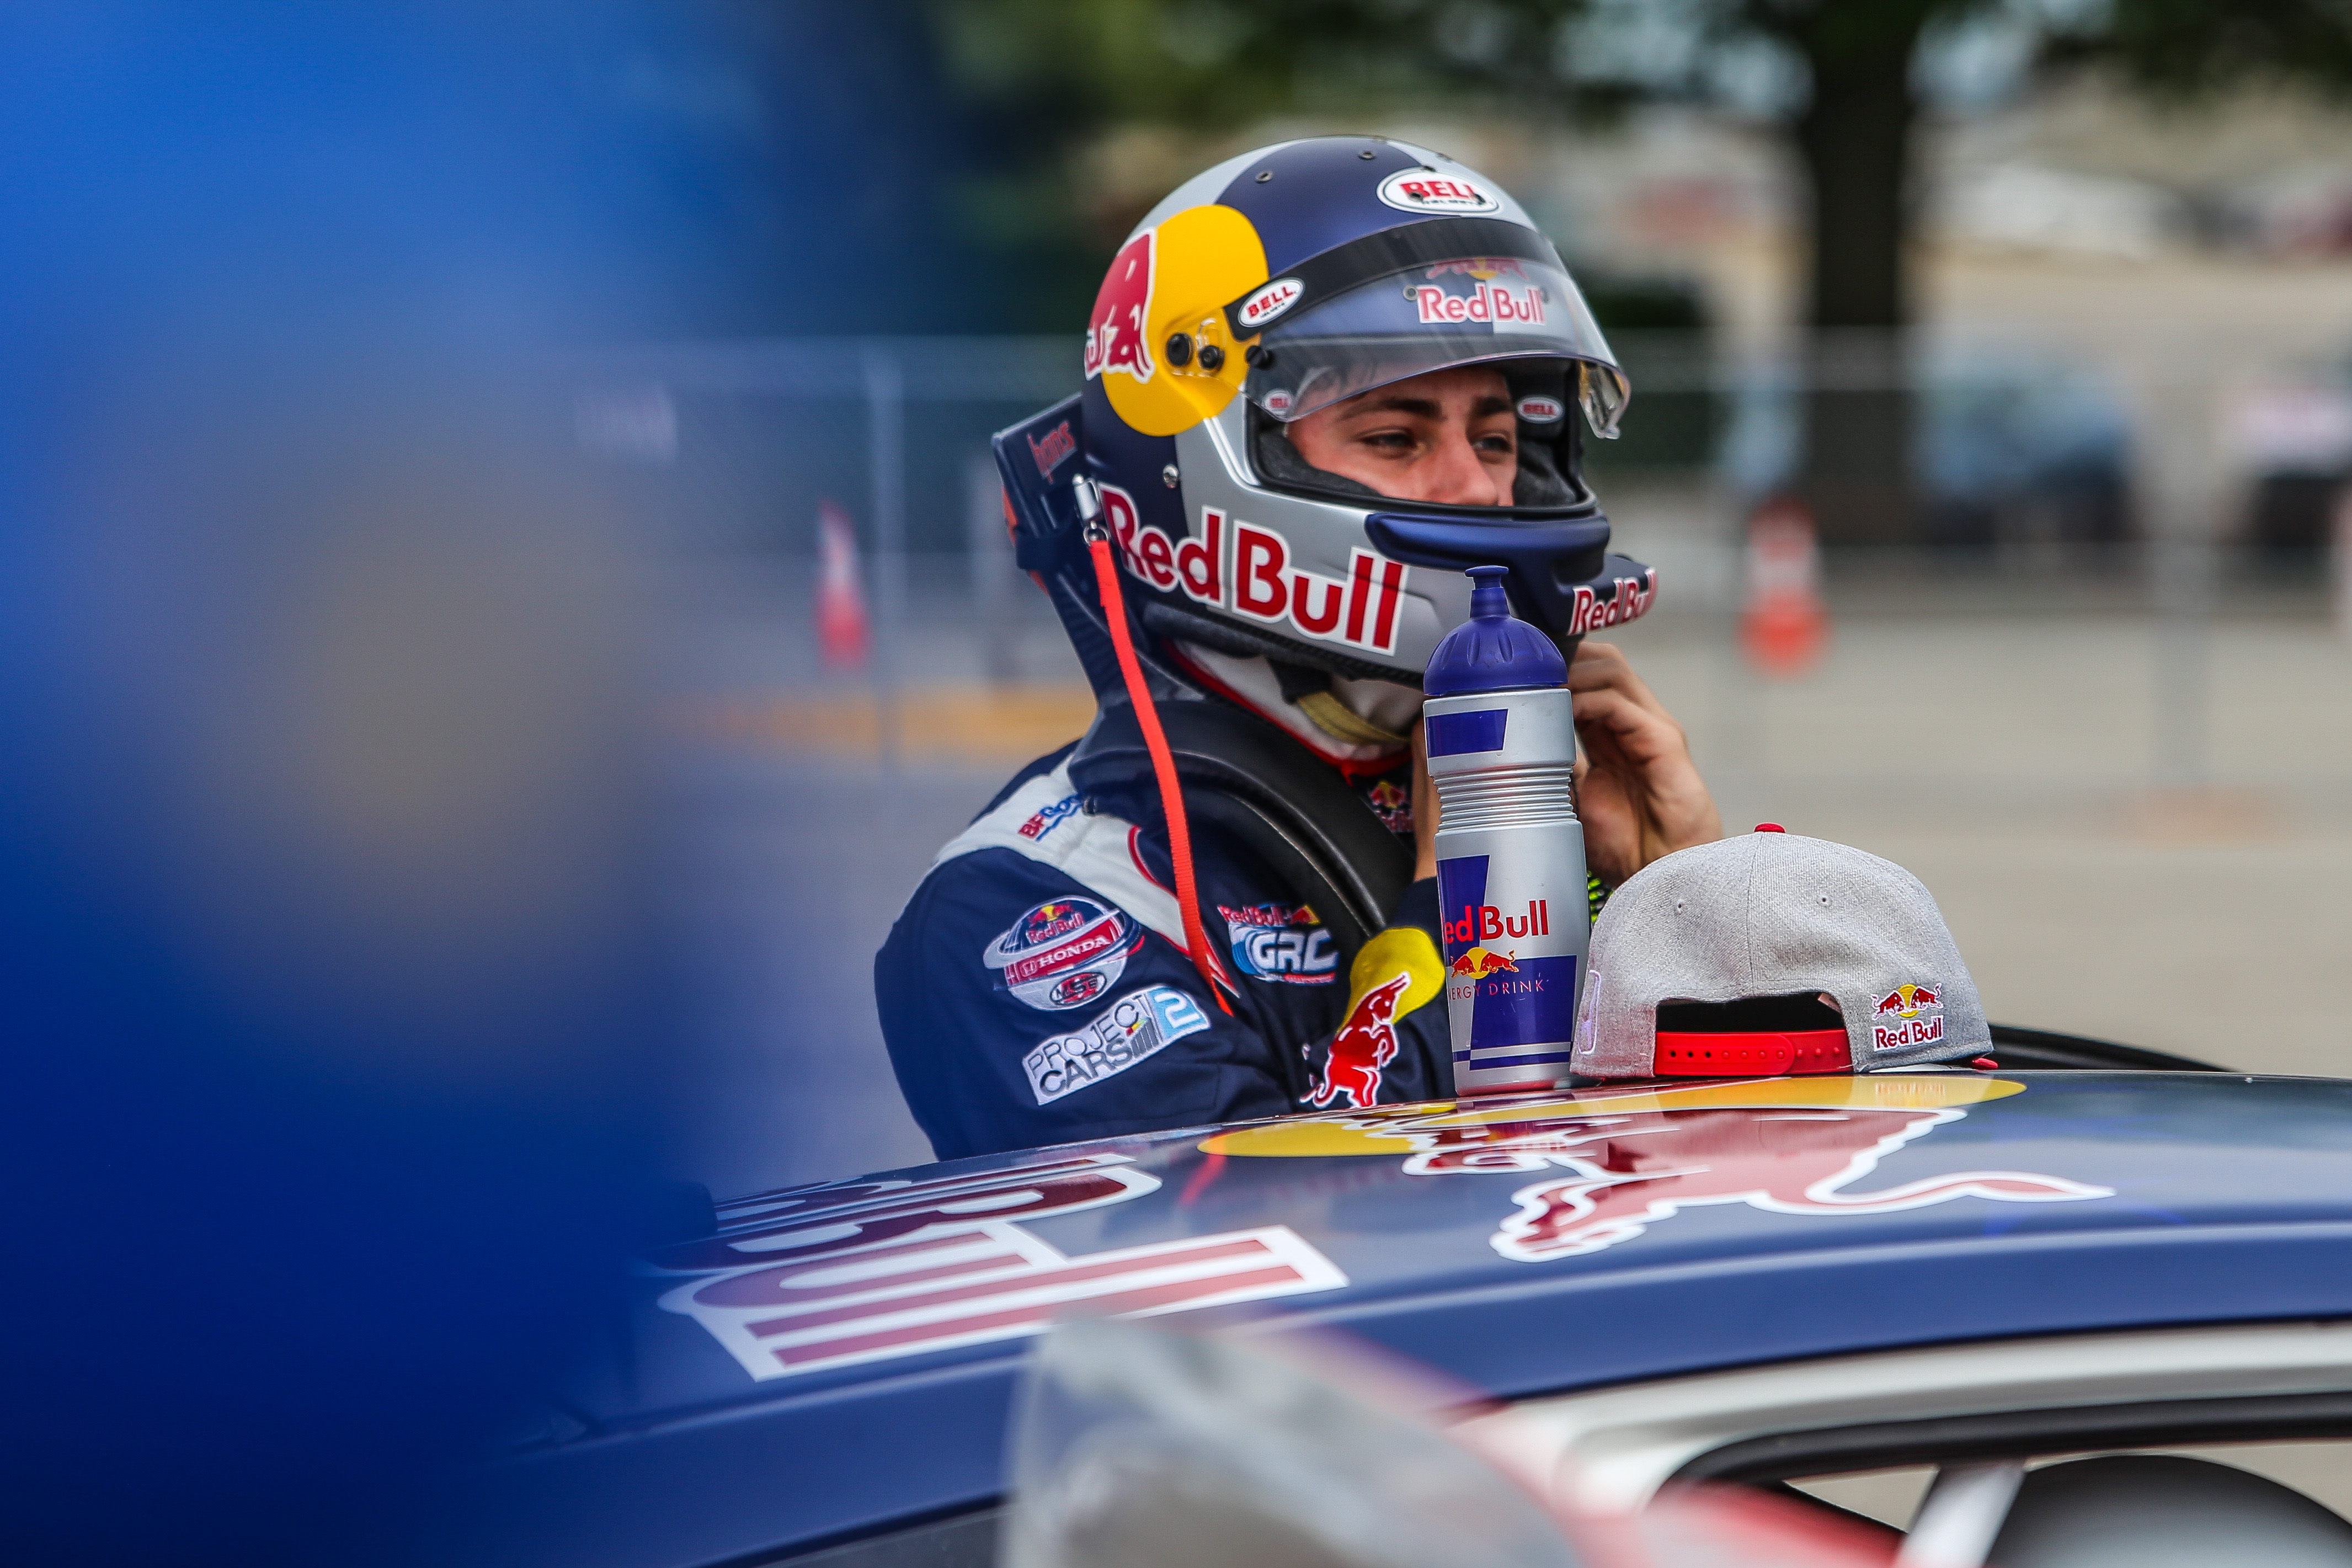 2016 honda civic coupe red bull global rallycross race car debuts in - Mitchell Dejong 24